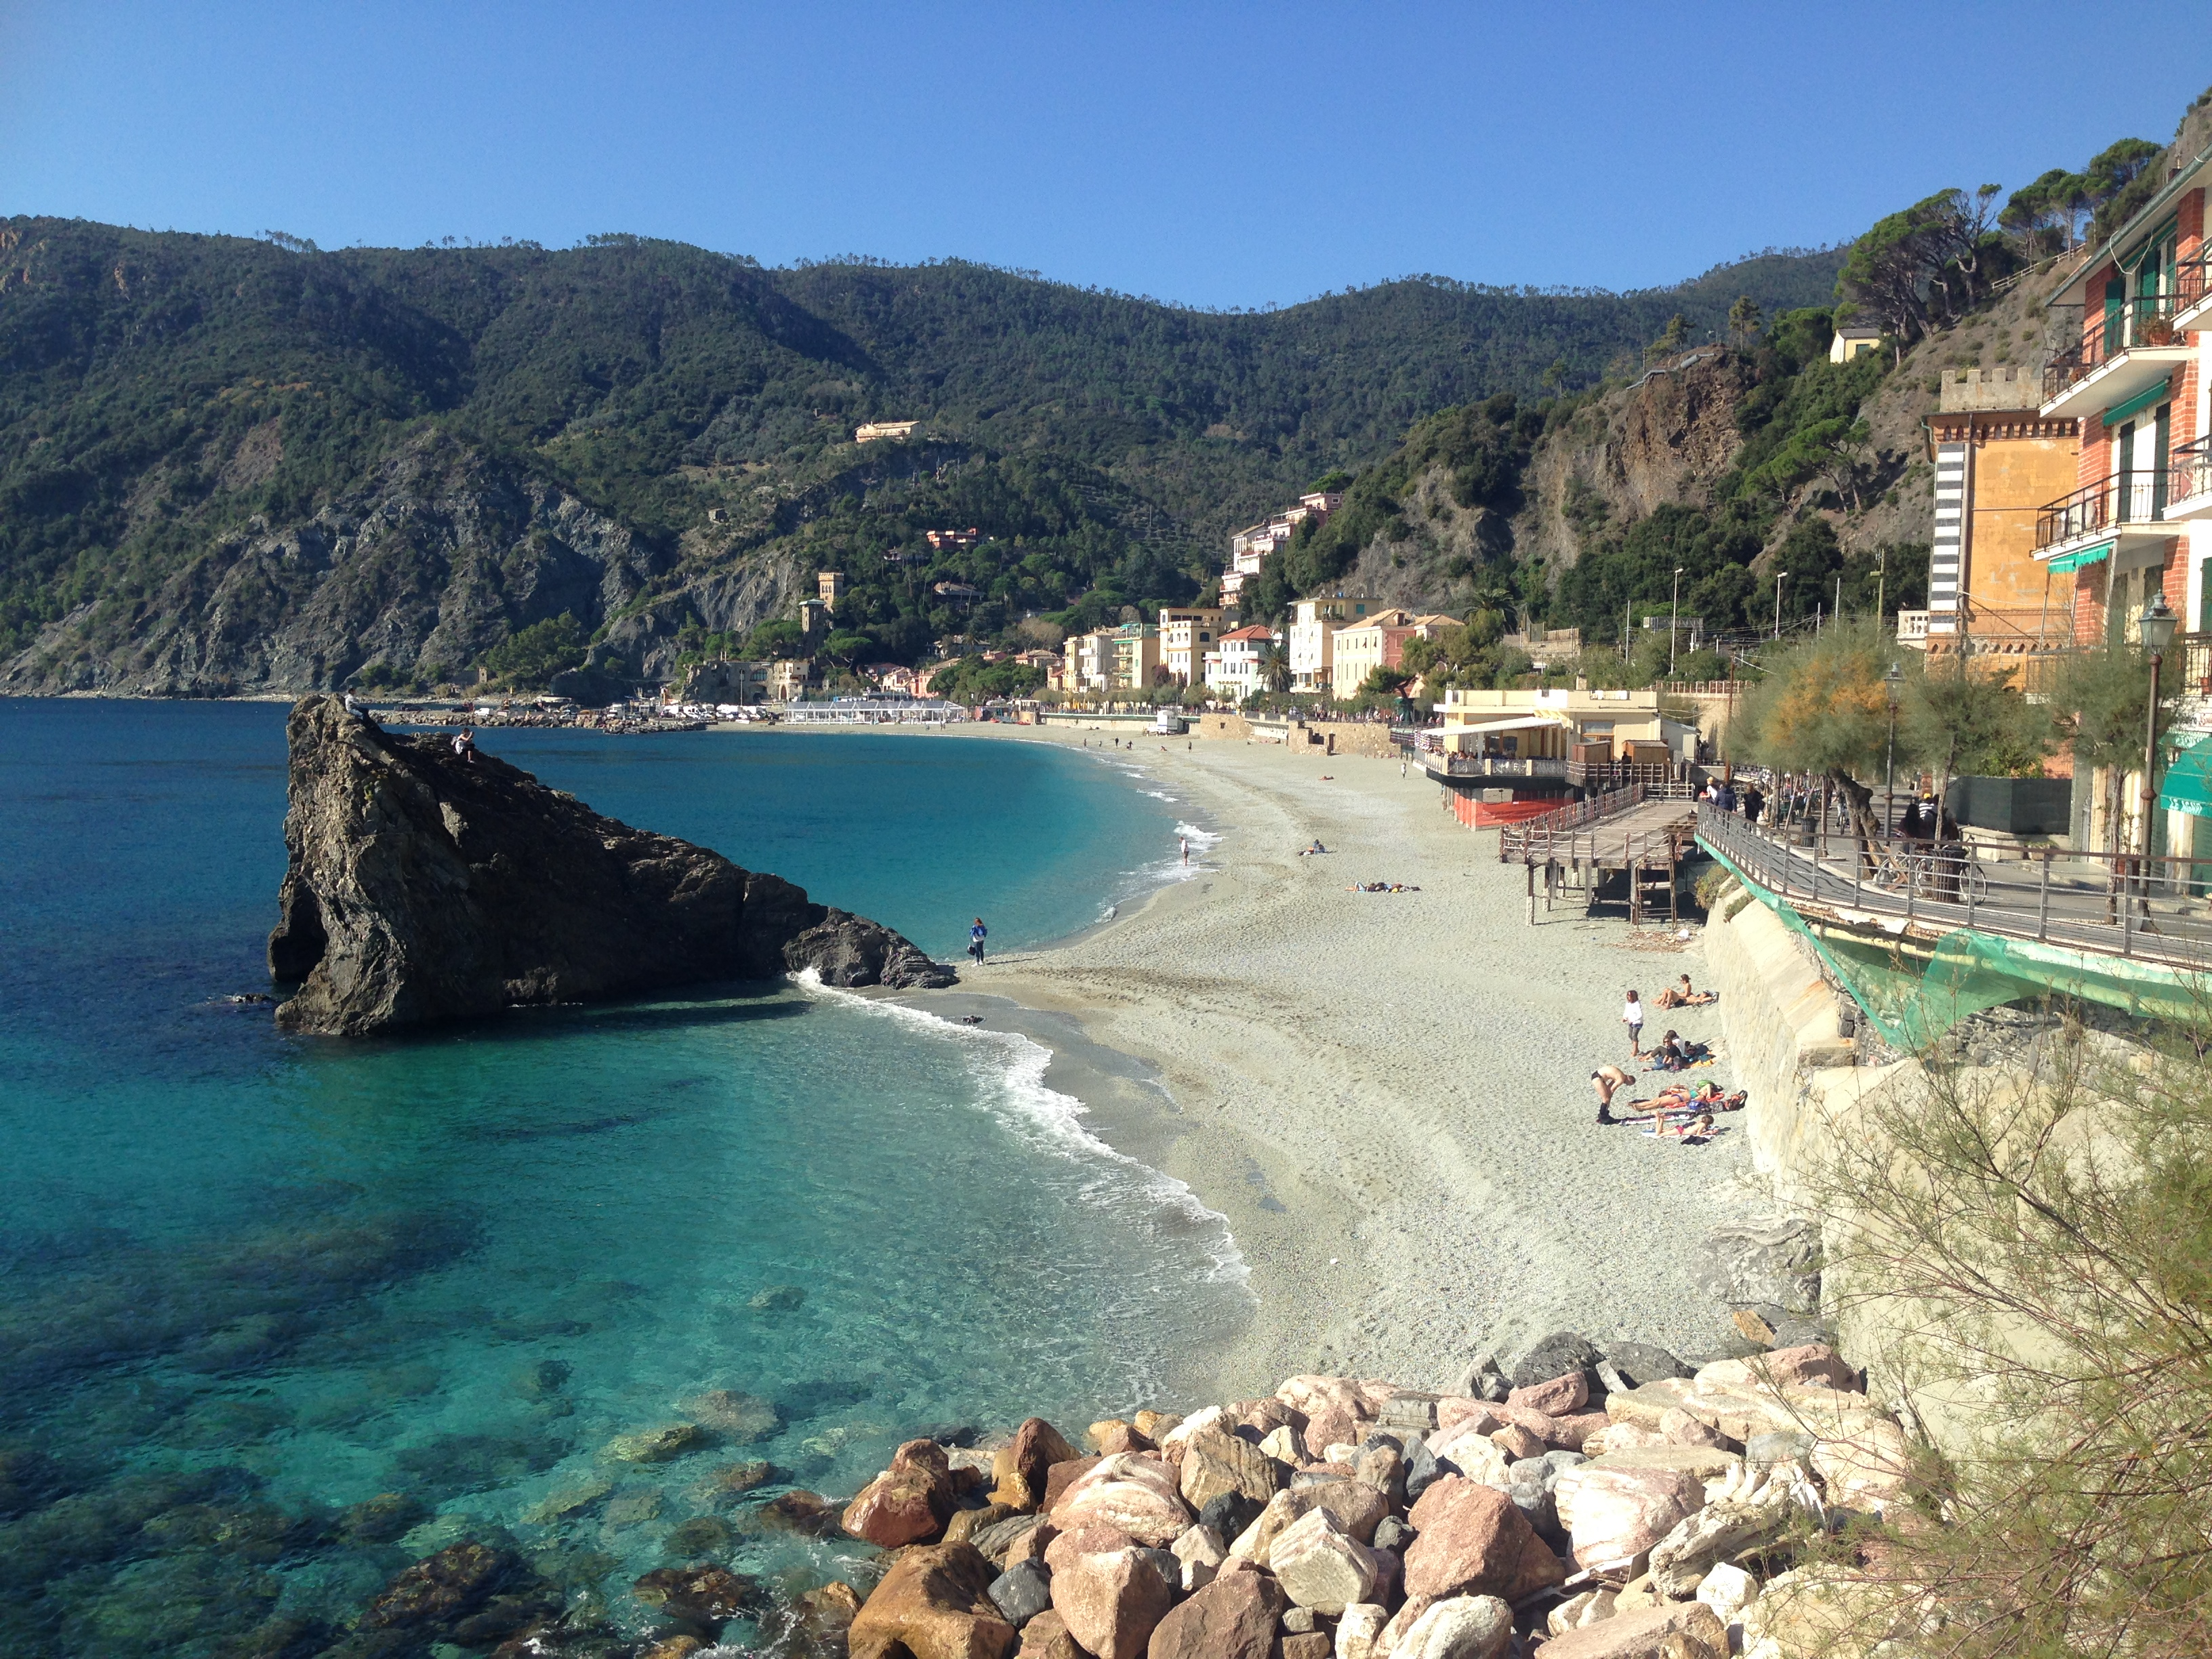 Beach in Monterosso.